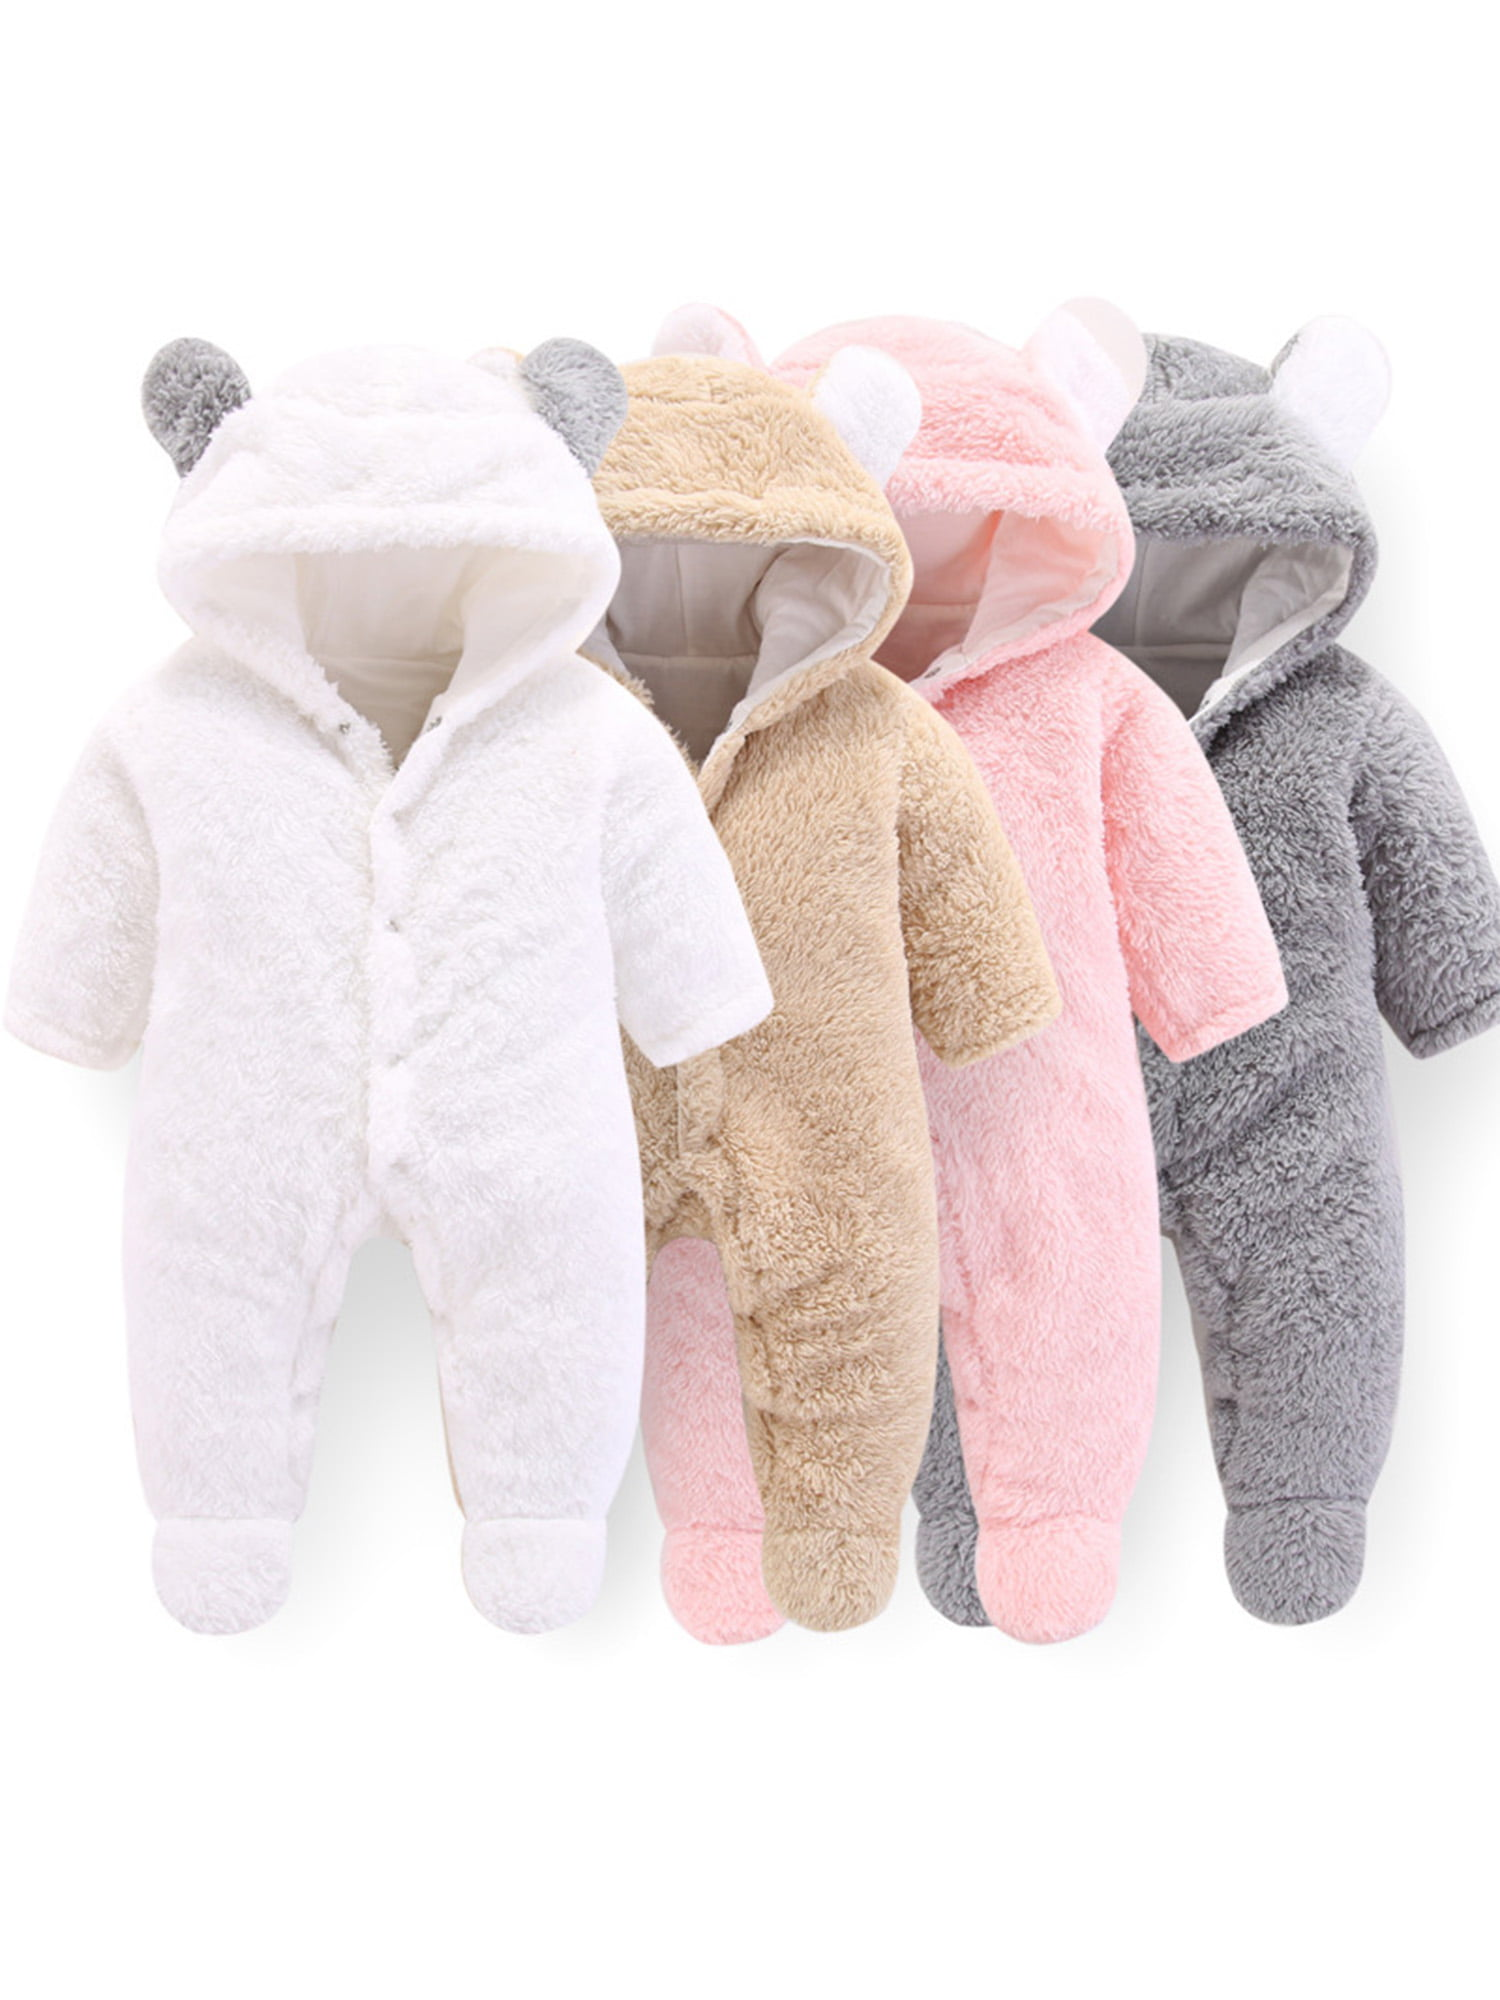 Baby Boy Girl Clothes NewBorn Winter Hooded Rompers Thick Cotton Outfit Jumpsuit